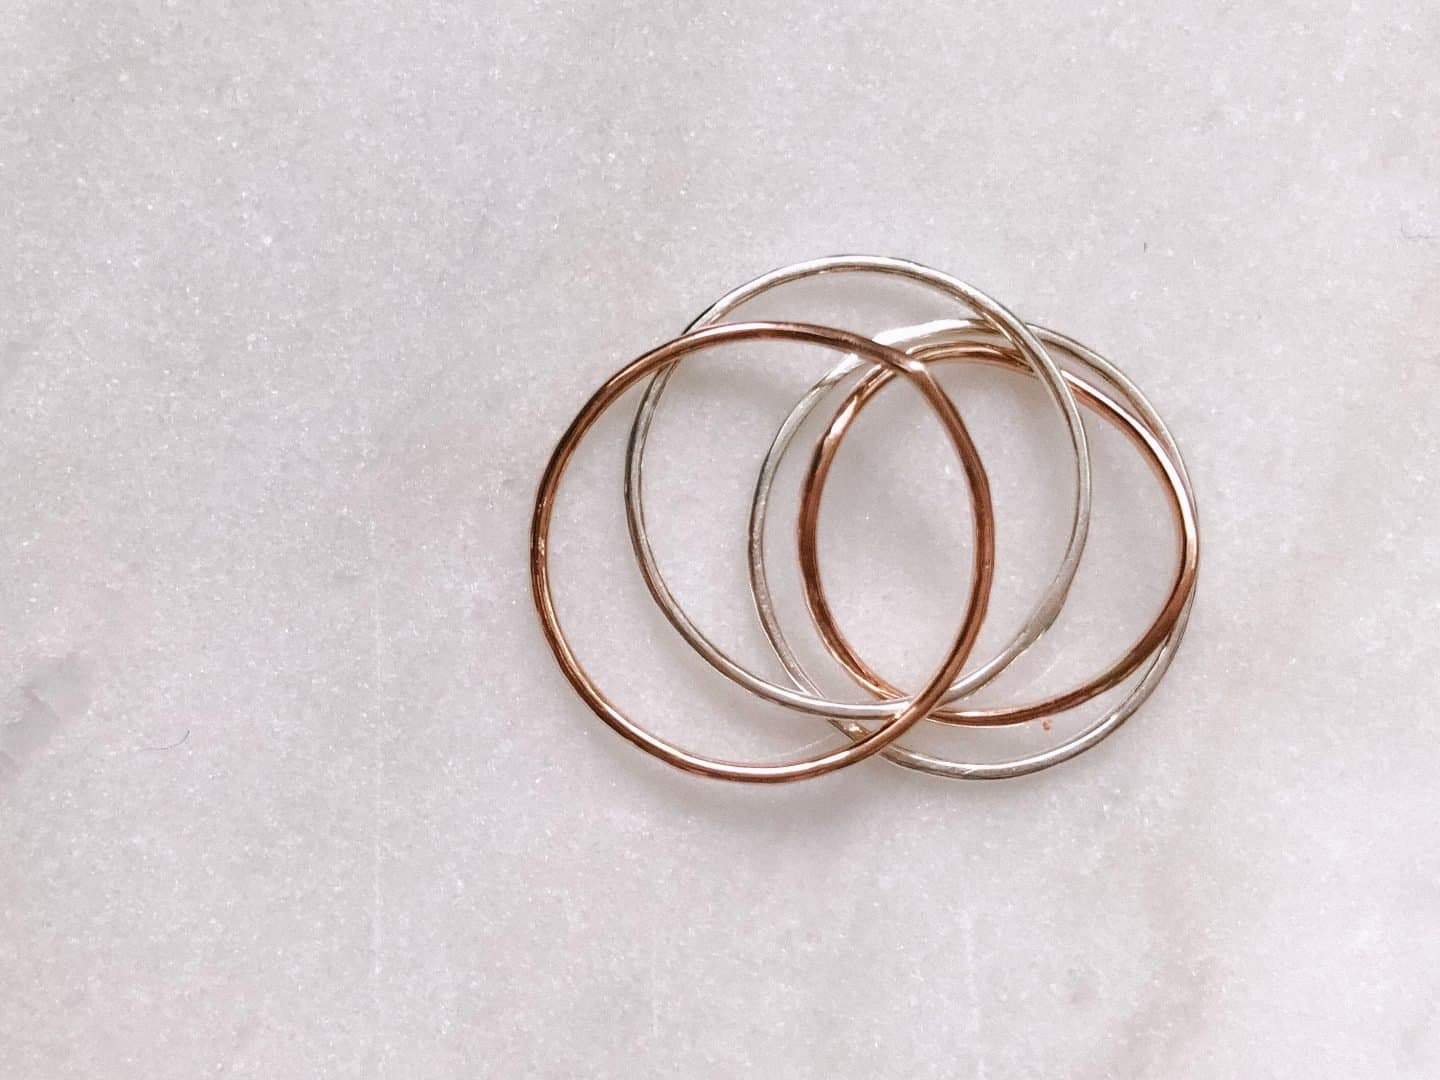 Nikki Stark Jewellery recycled silver and rose gold skinny rings